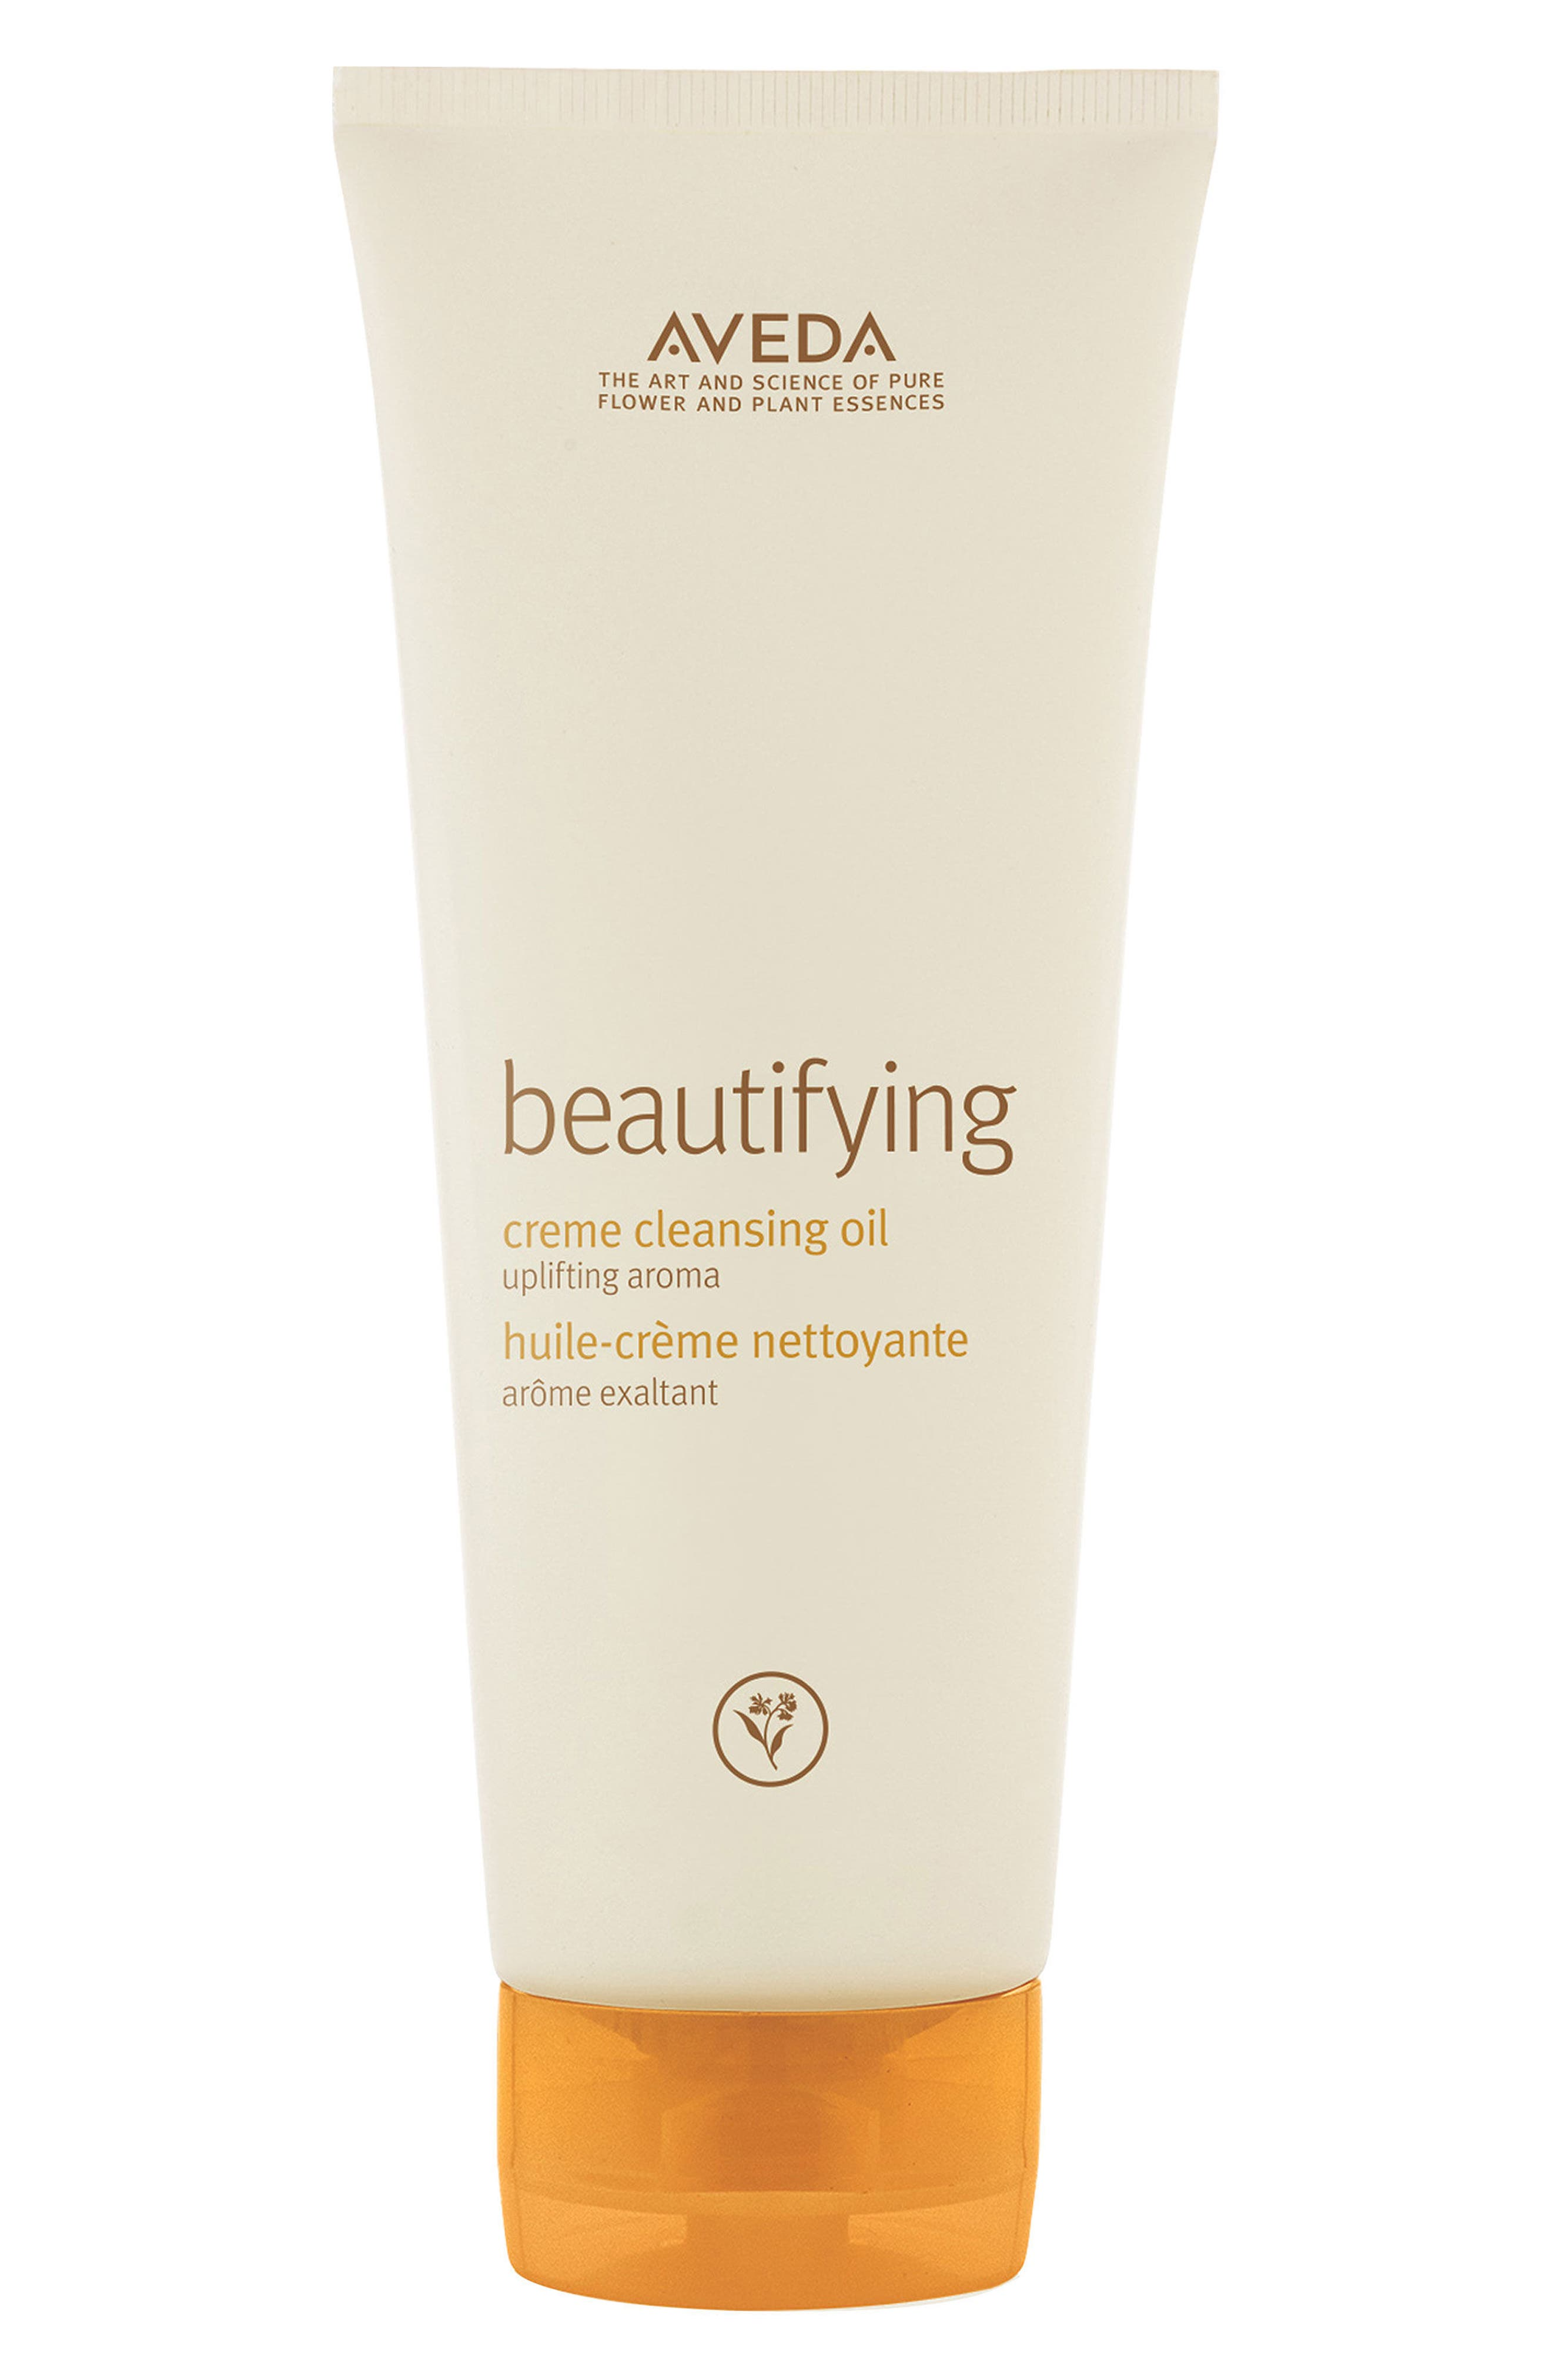 Aveda 'Beautifying' Crème Cleansing Oil